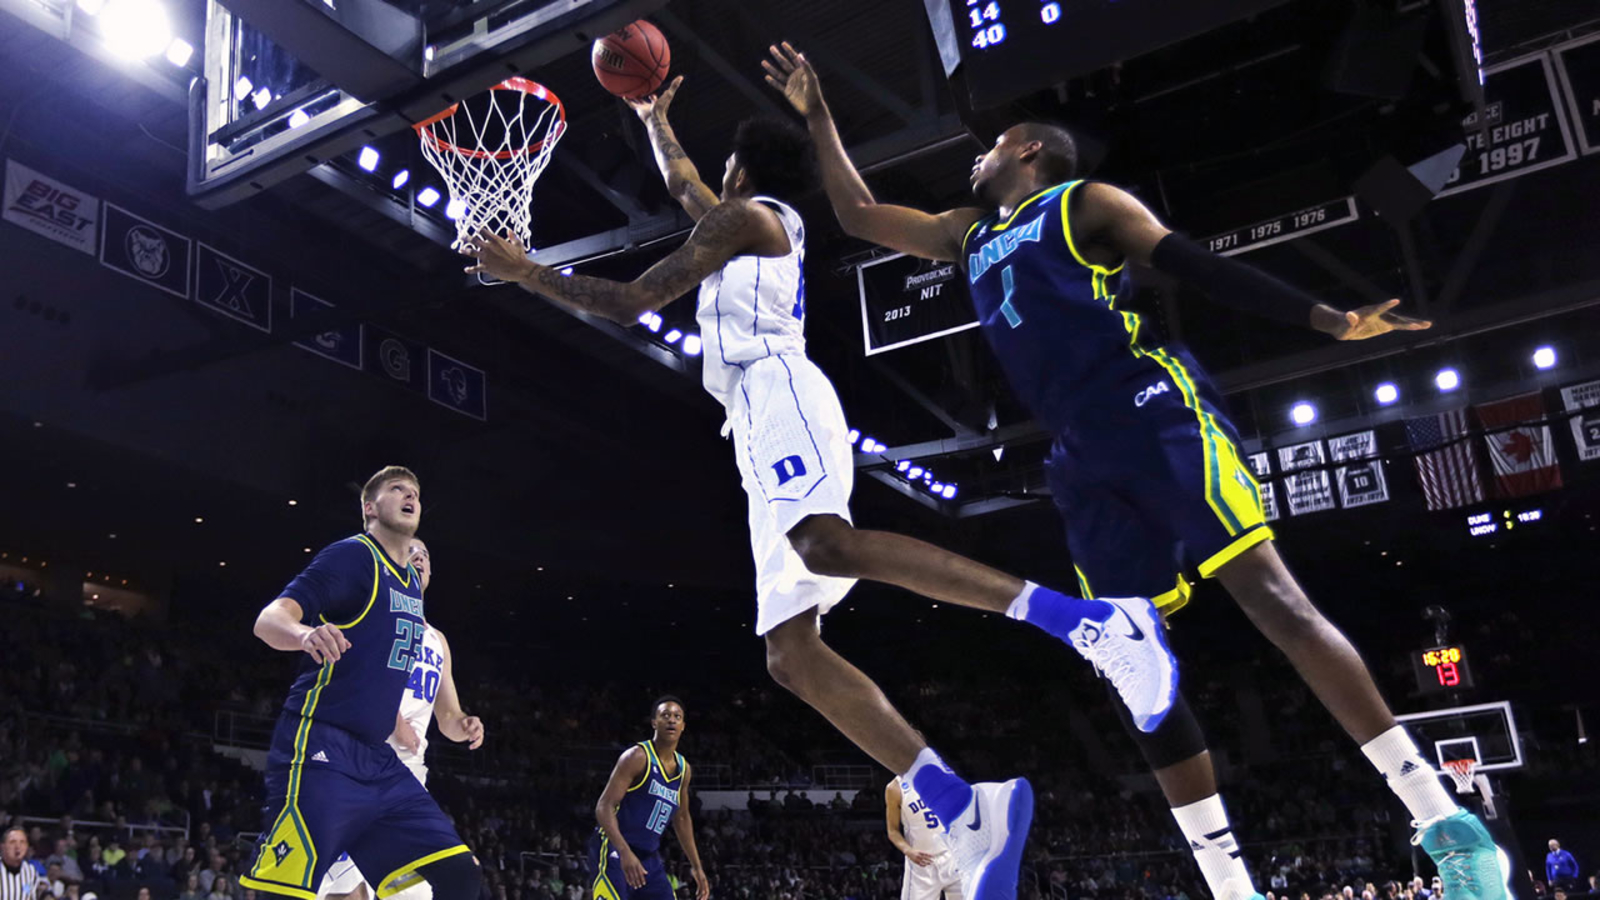 Duke Beats Unc Wilmington In First Round Of Ncaa